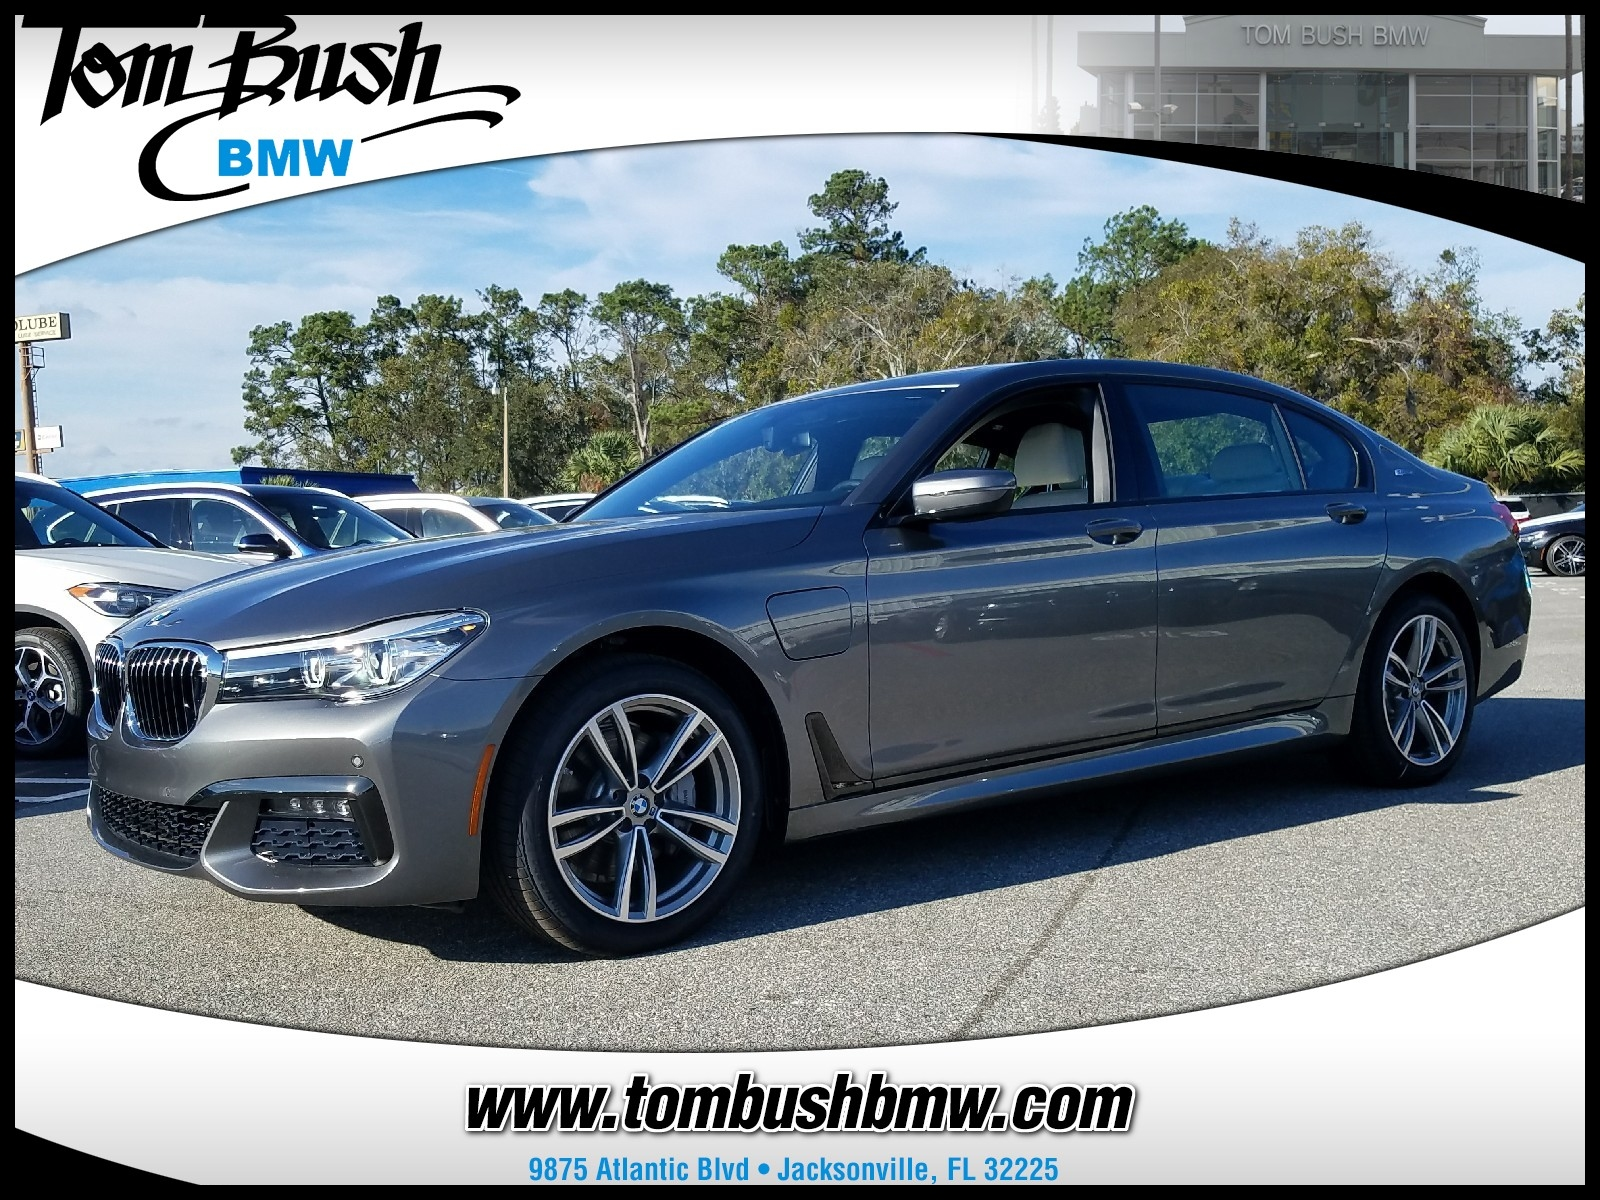 2018 New BMW 7 Series For Sale in Jacksonville FL B